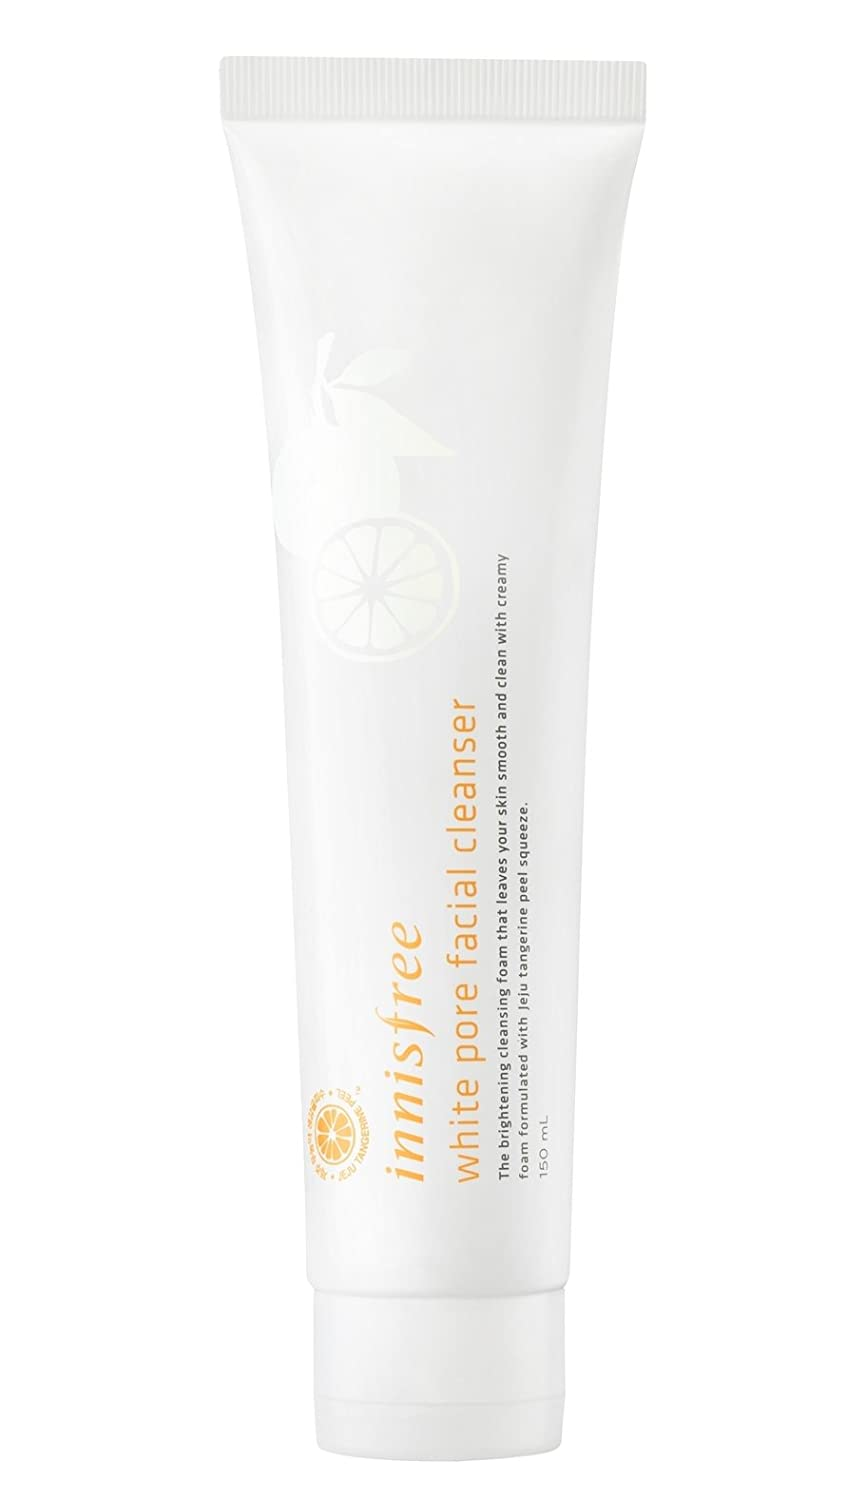 White Pore Facial Cleanser by innisfree #16